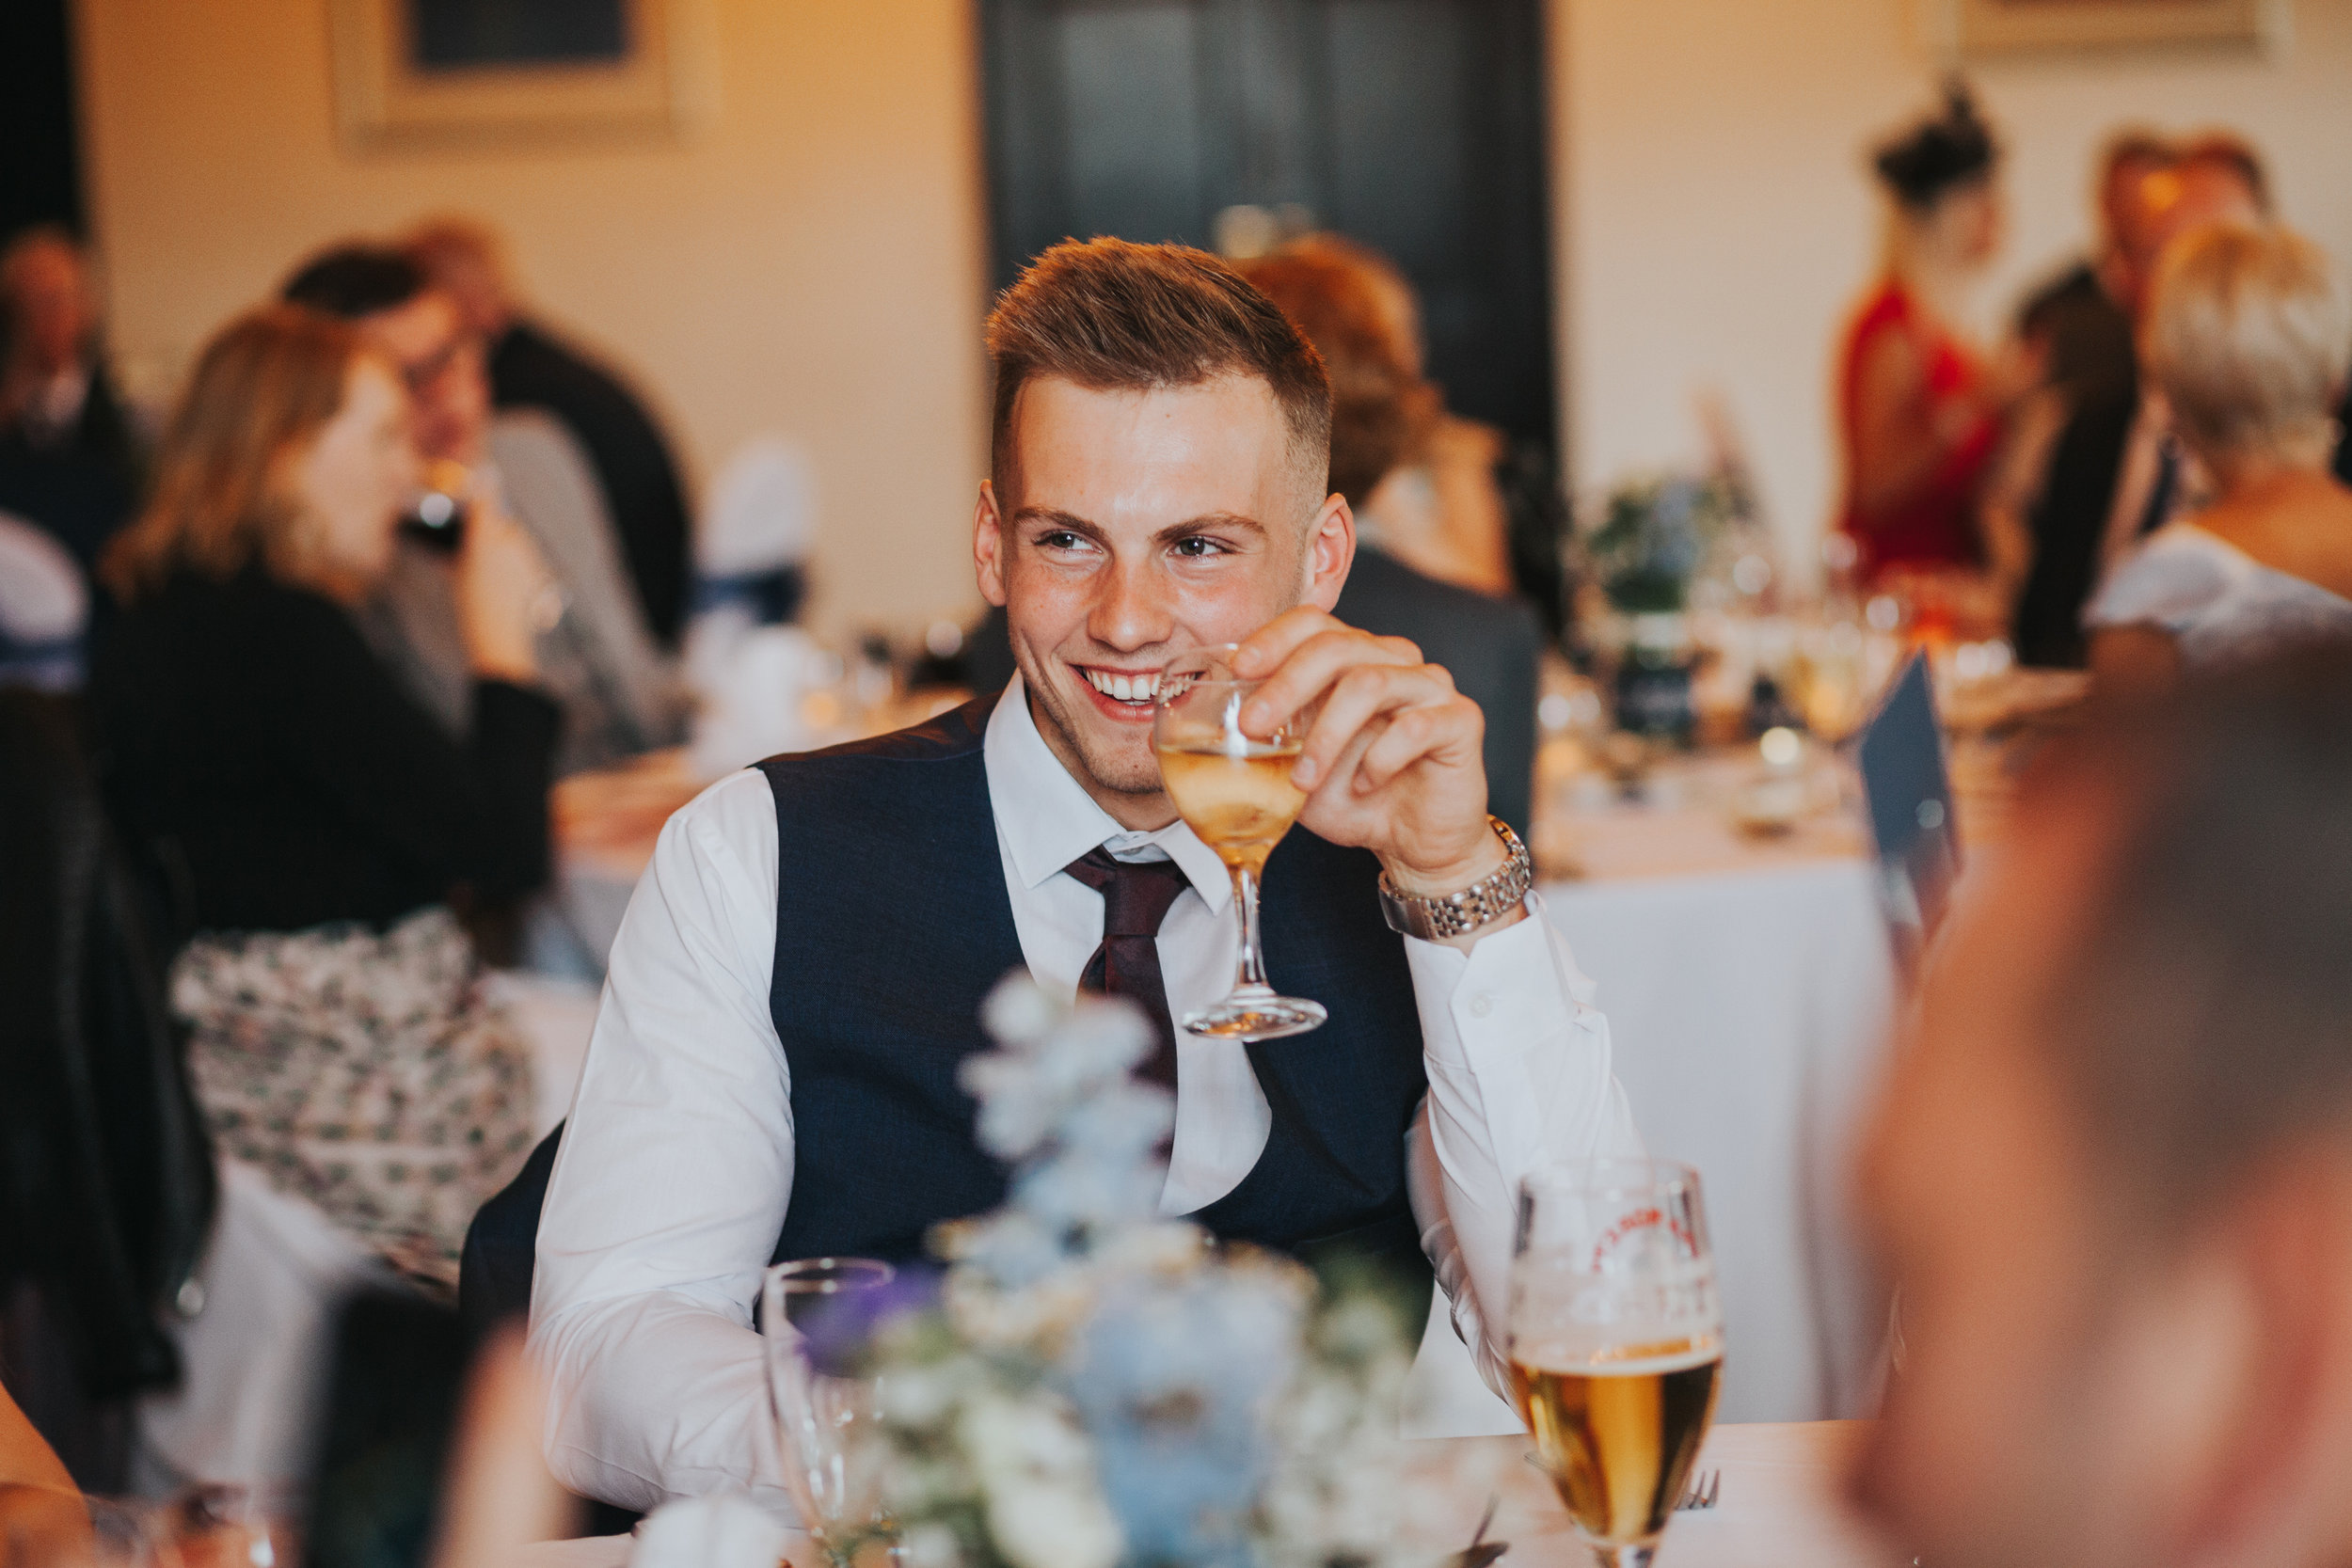 Male wedding guest enjoys some champagne while smiling.